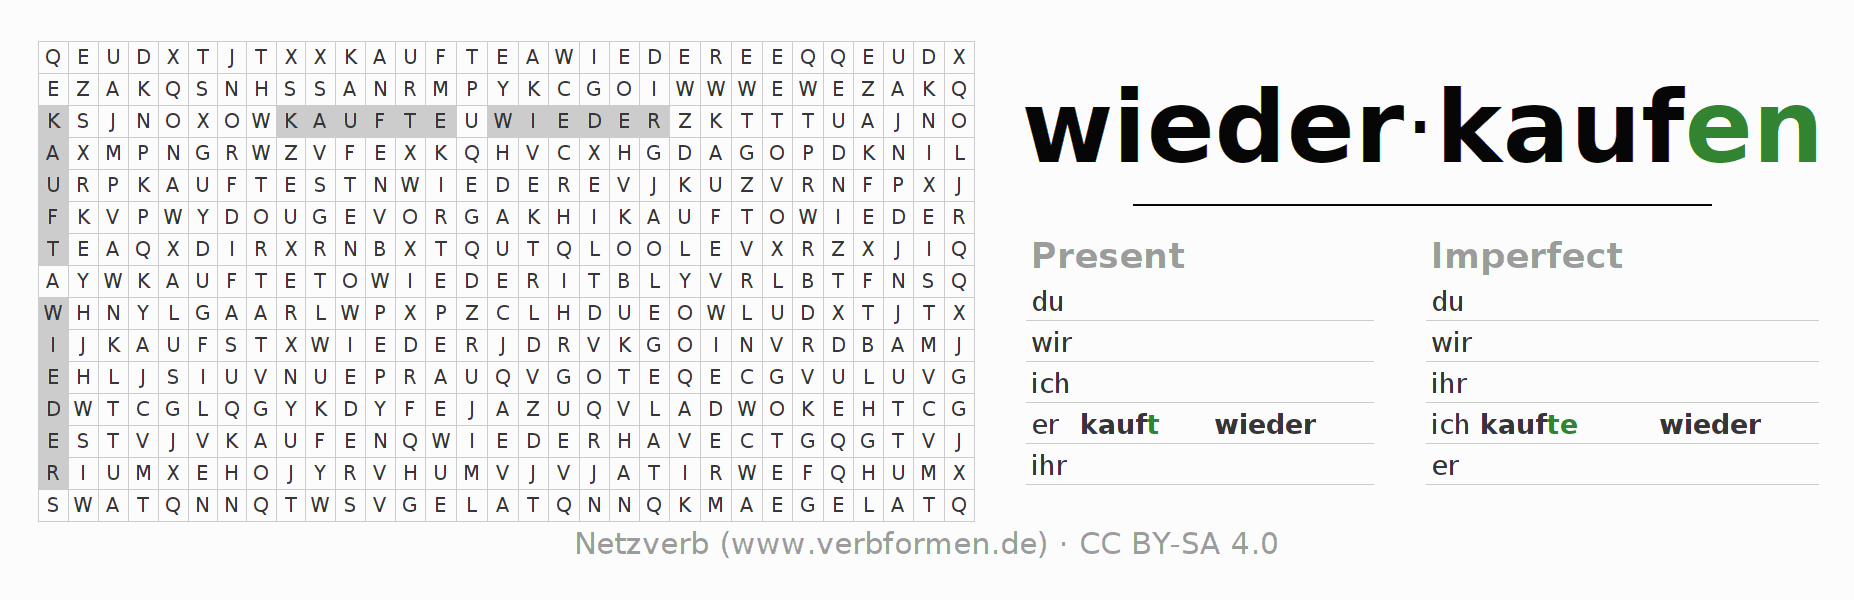 Word search puzzle for the conjugation of the verb wiederkaufen